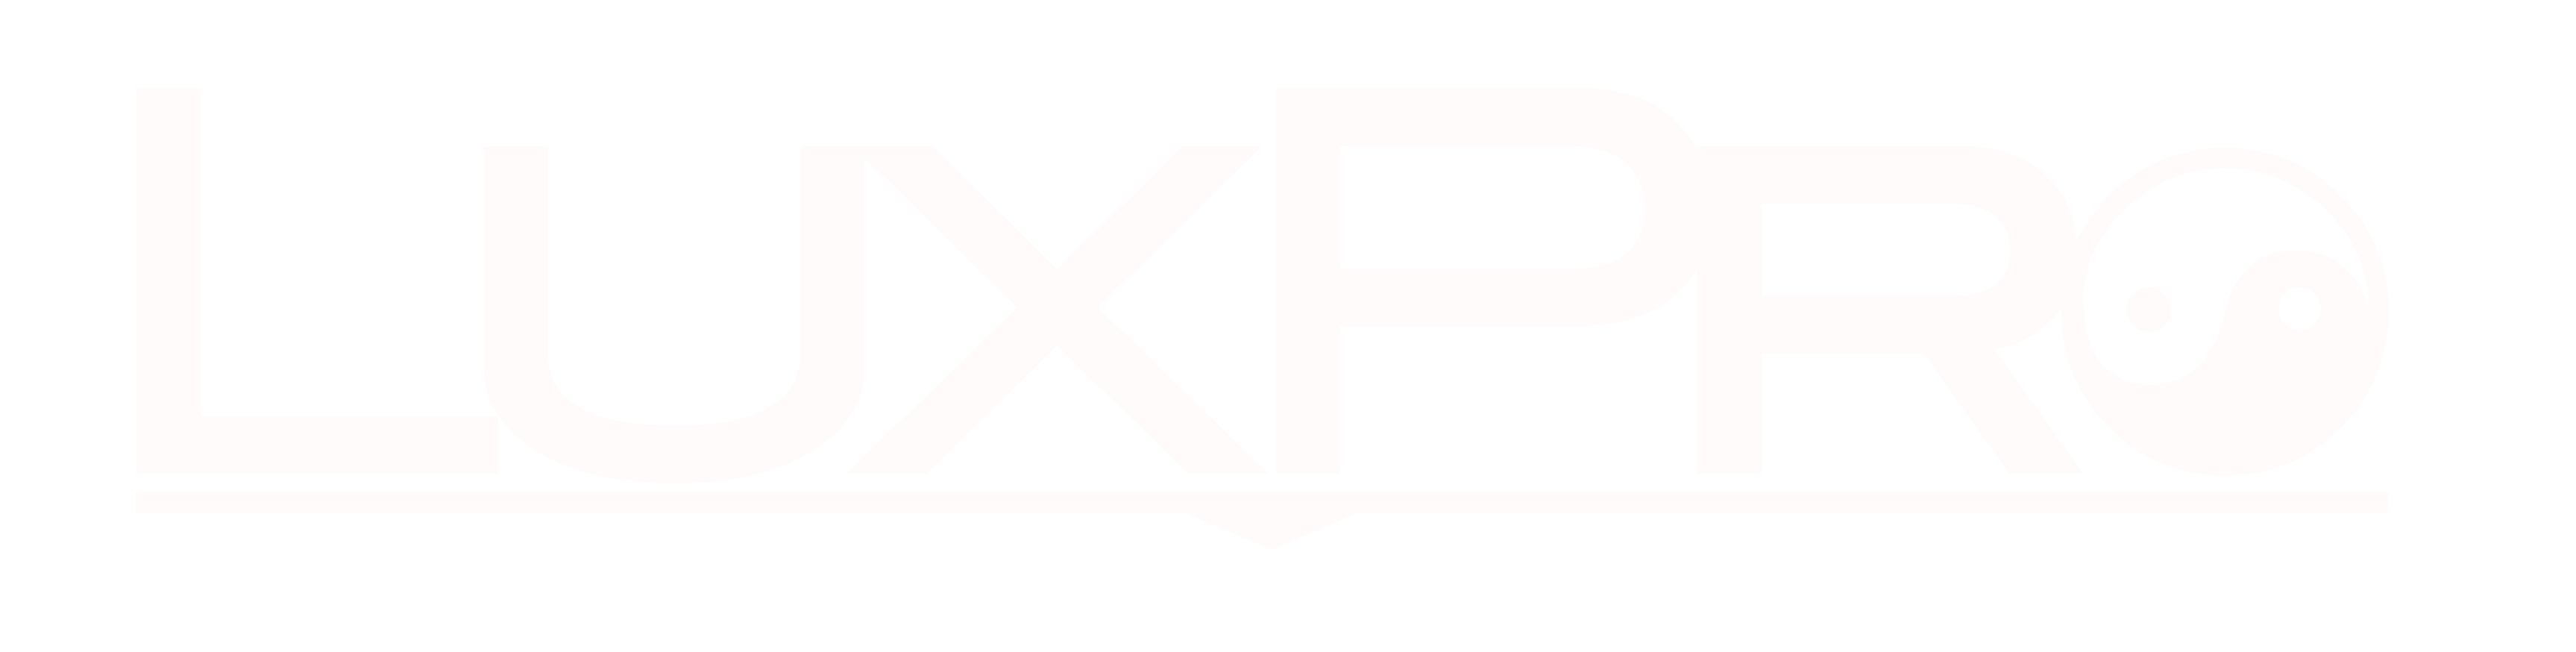 LuxPro logo